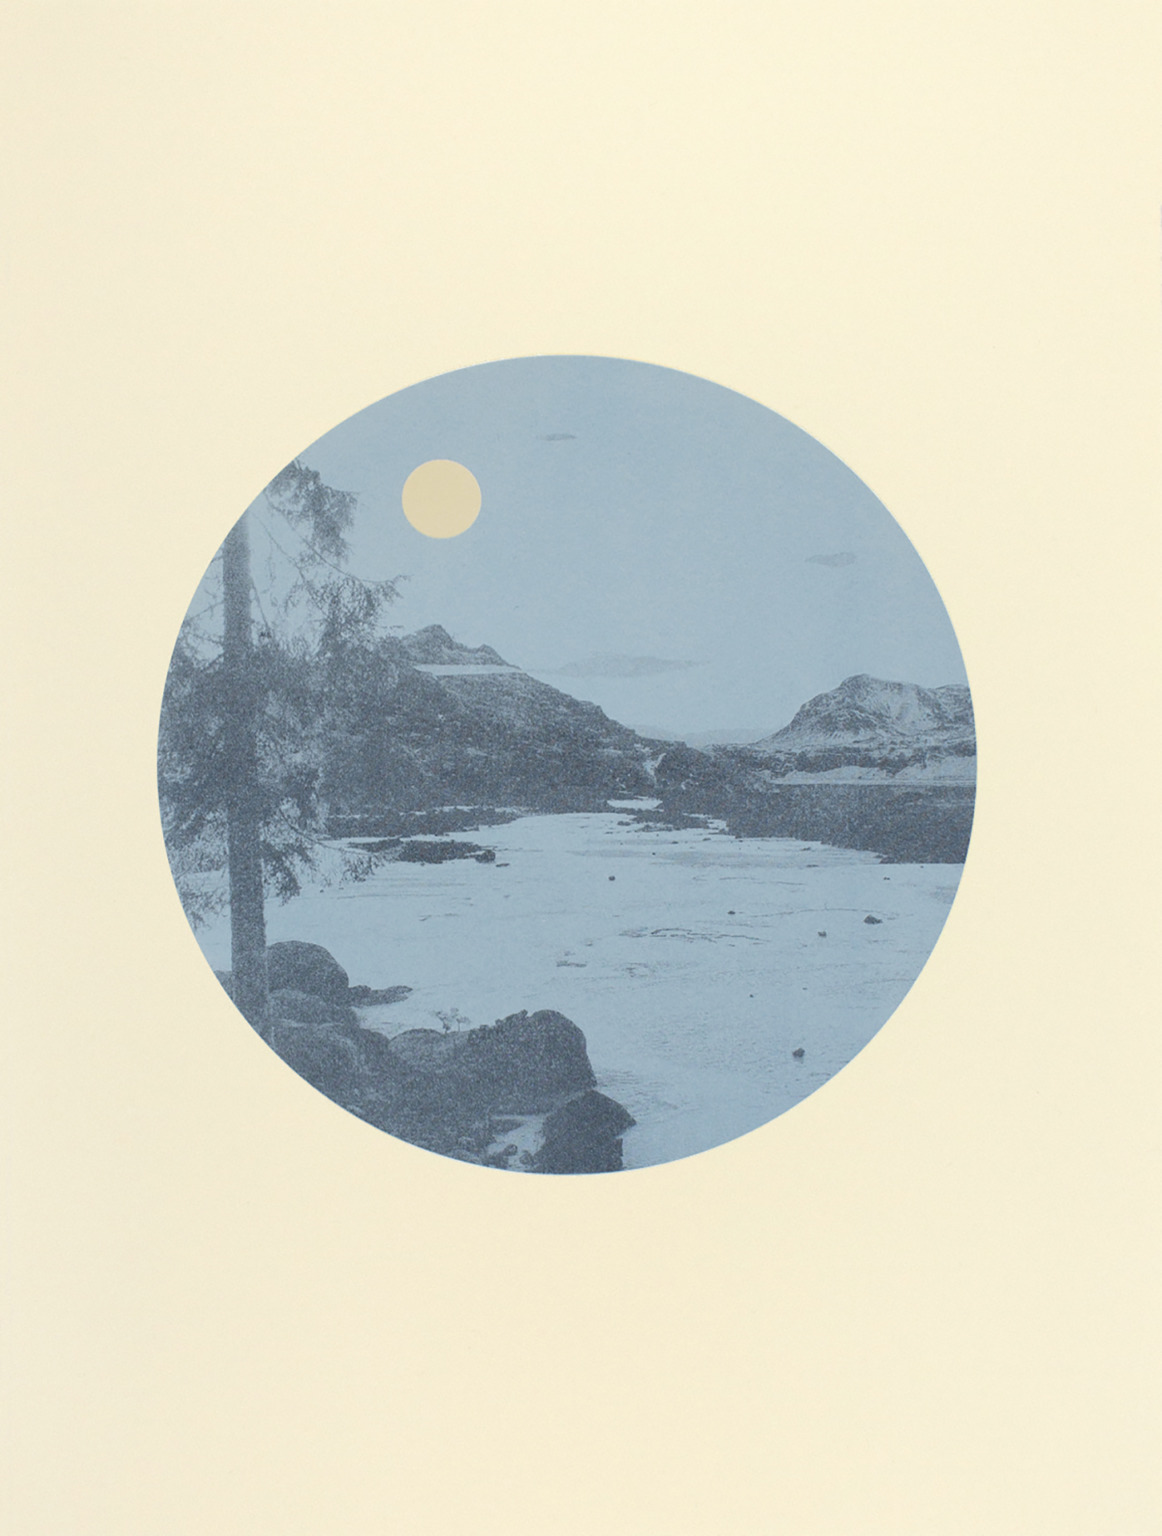 Pale blue and grey circular print of a snowy landscape with a pale yellow sun or moon in the sky.